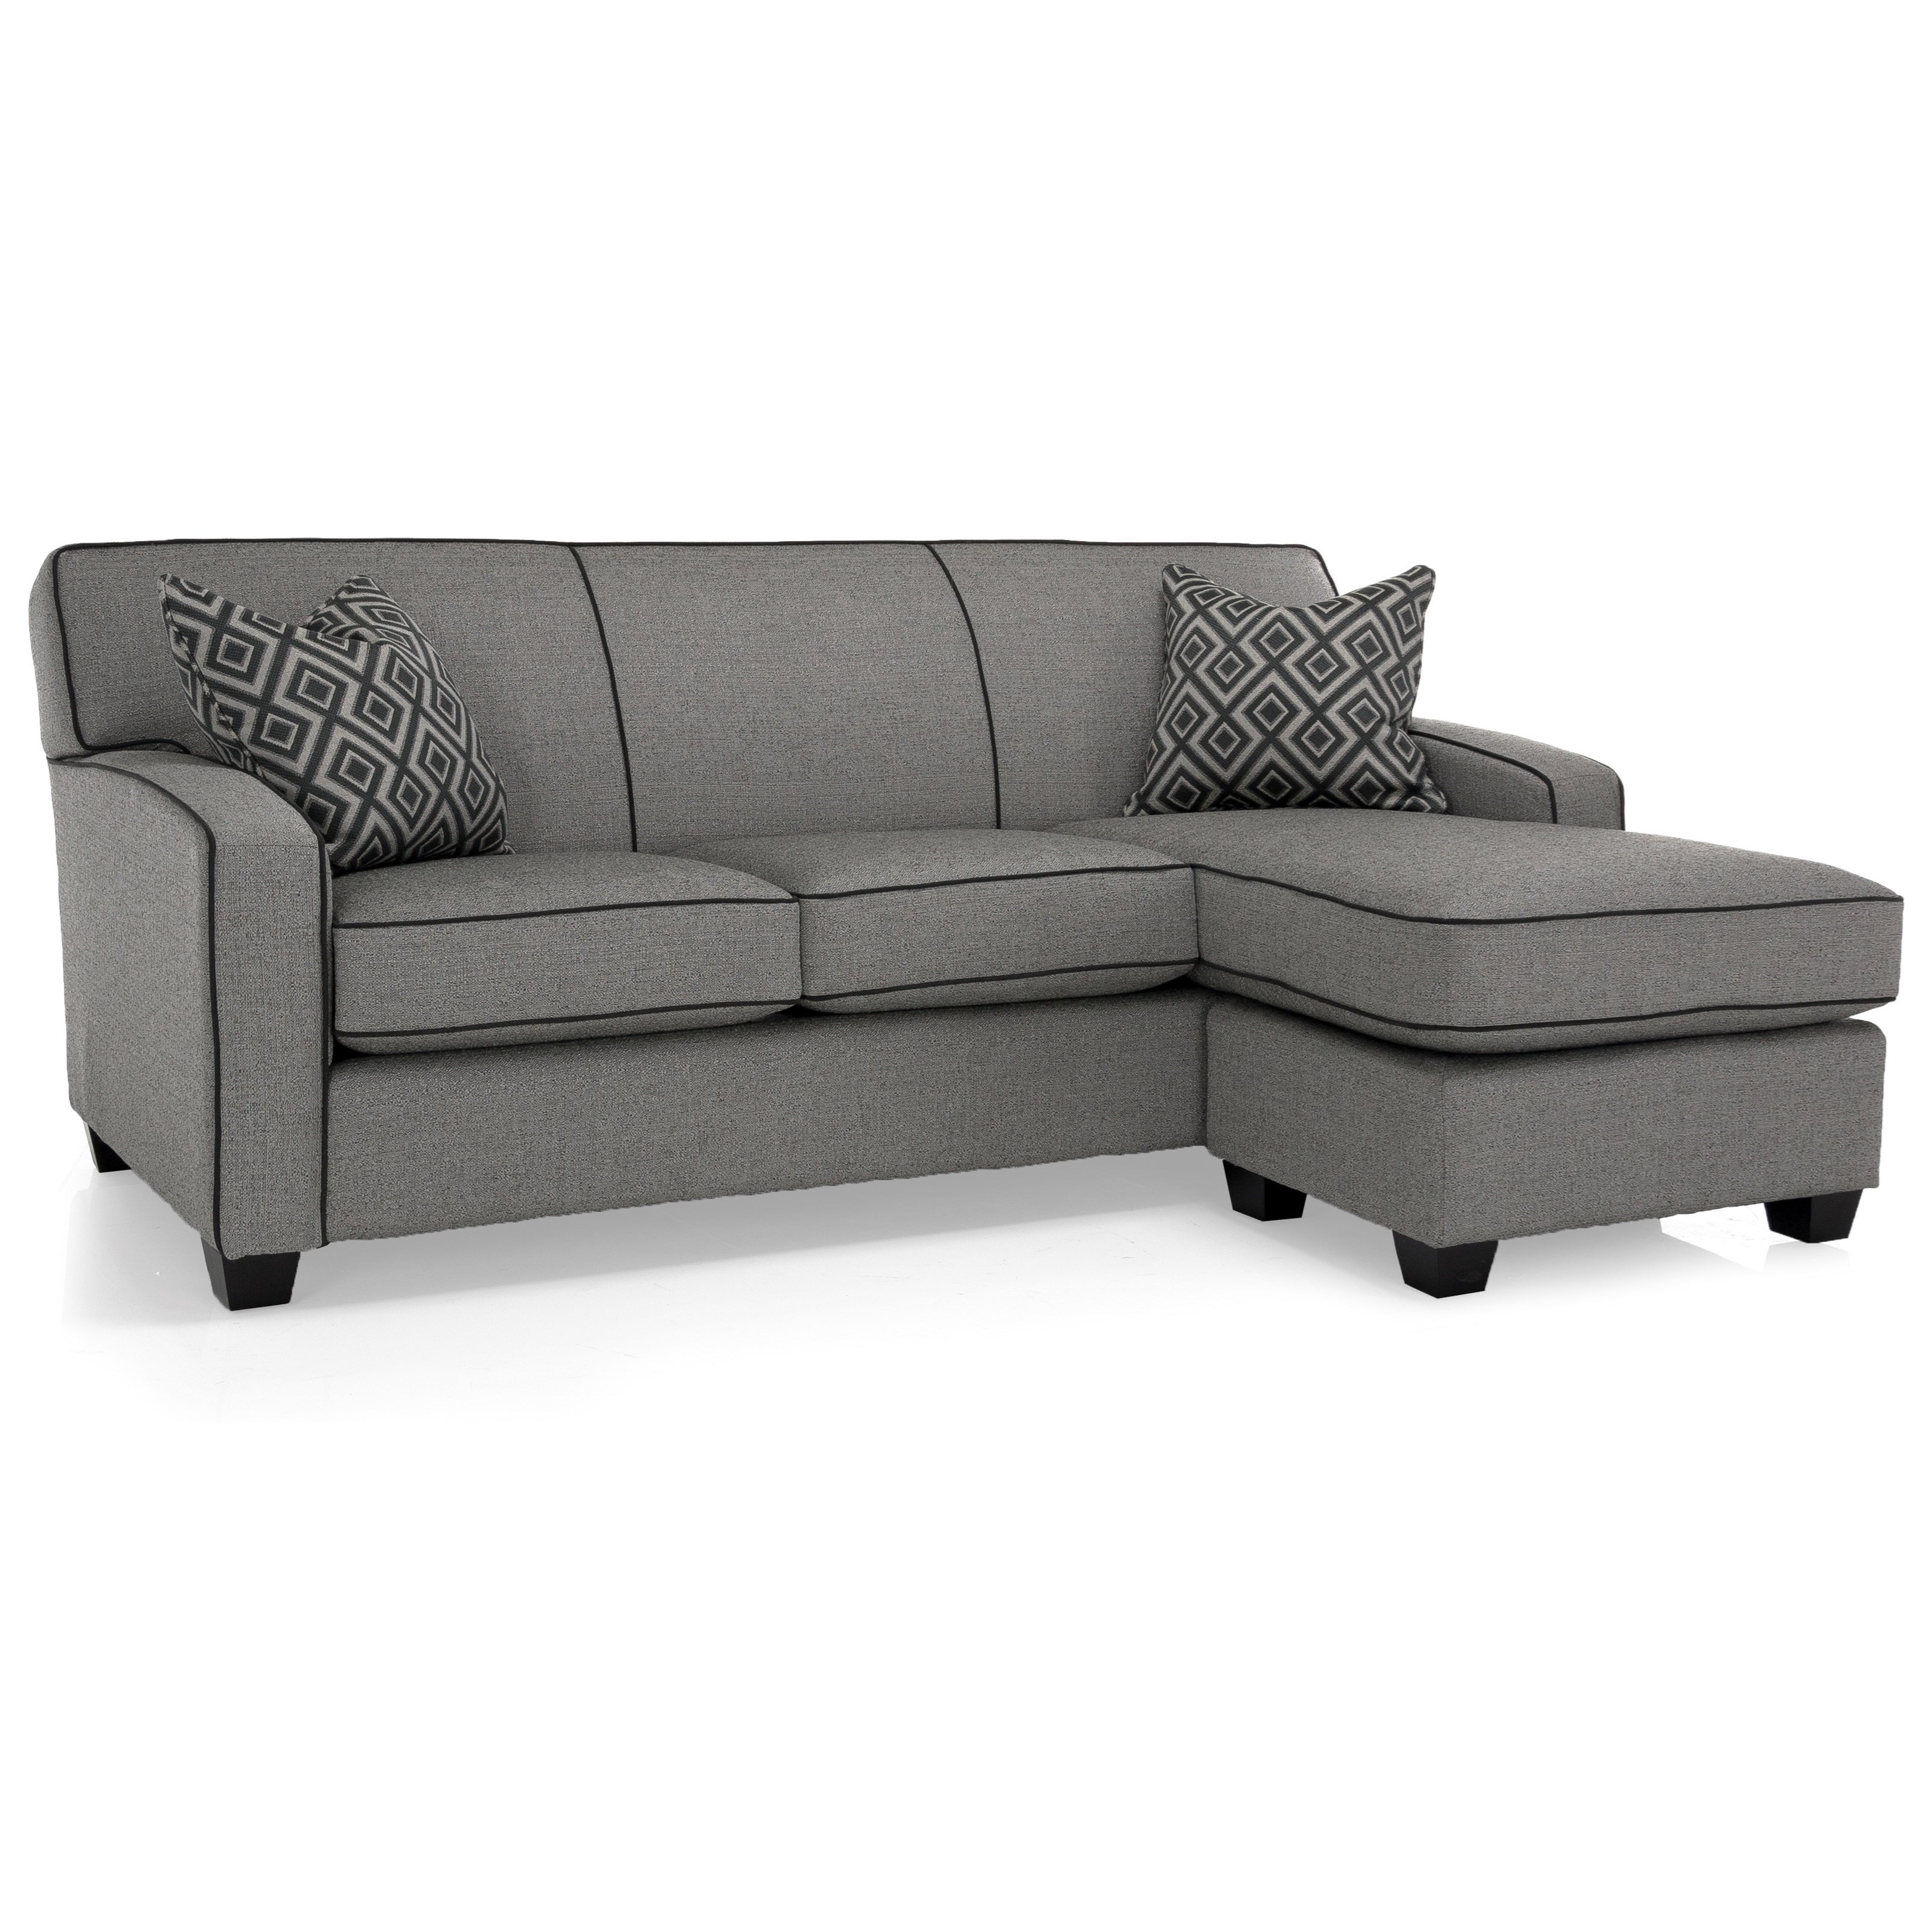 2401 Sofa with Chaise by Decor-Rest at Johnny Janosik